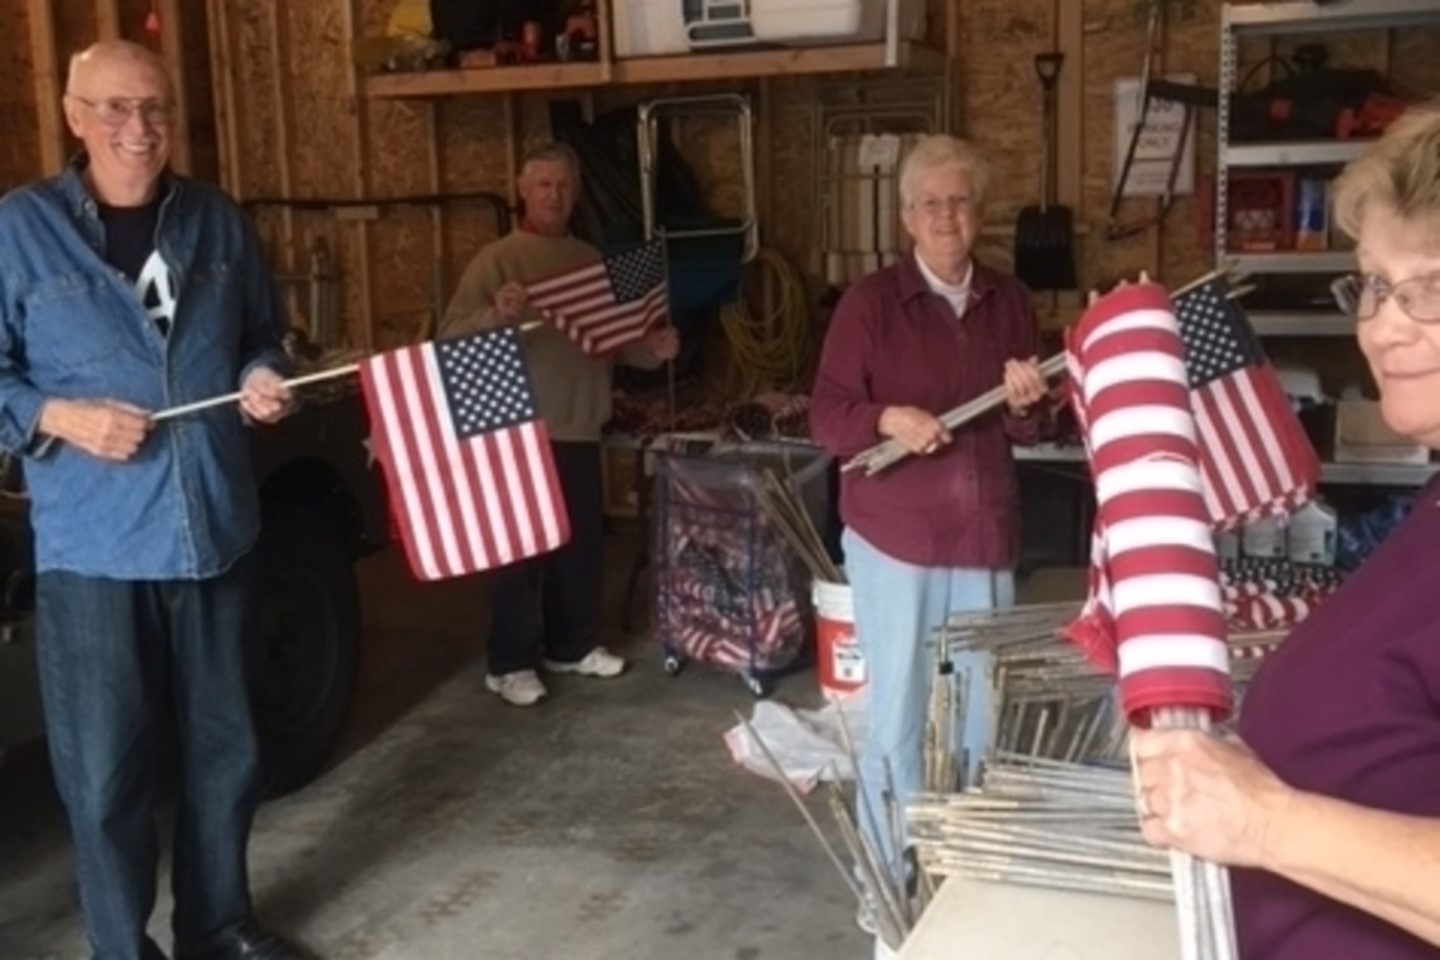 Members sort flags to reuse at area schools.